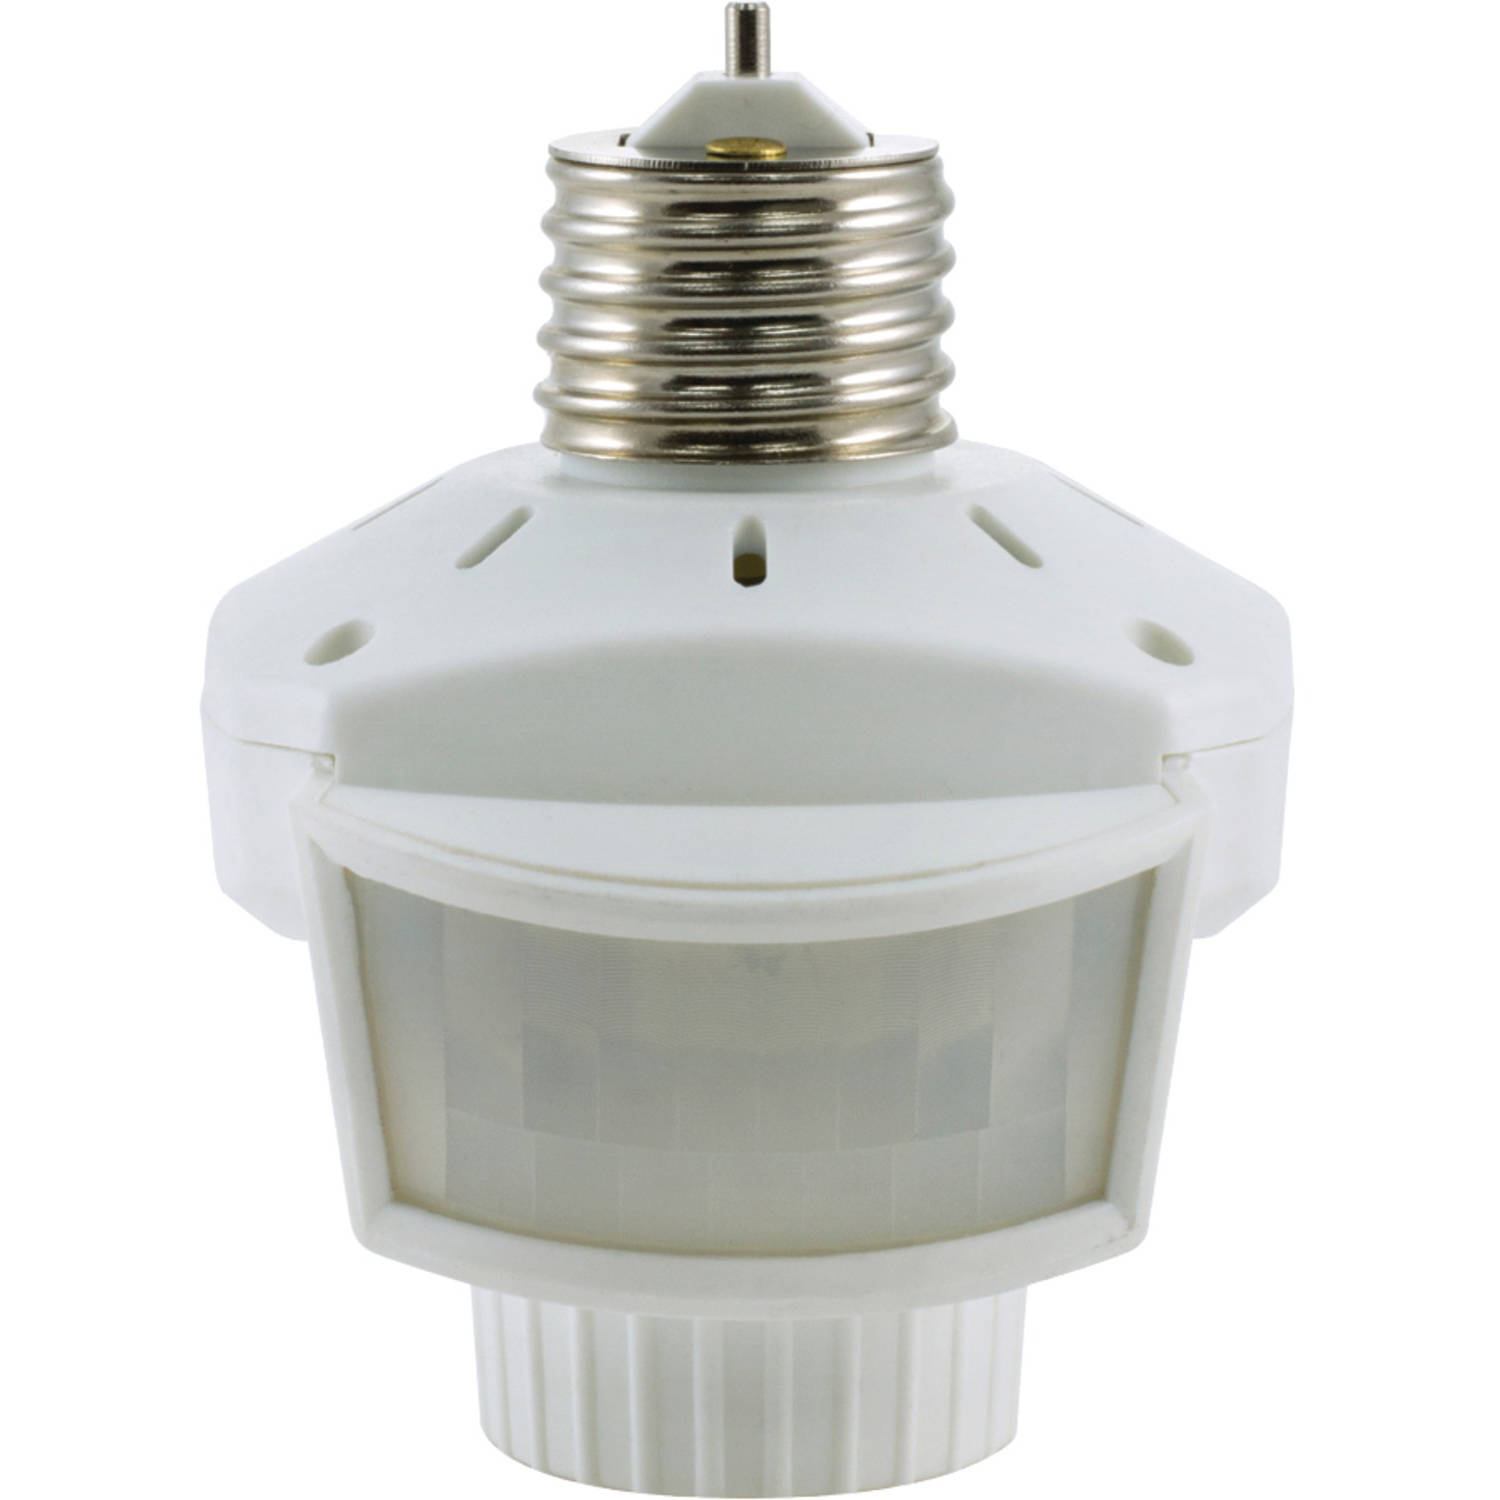 Ge 10456 indoor 120 degree motion sensing light control walmart aloadofball Image collections